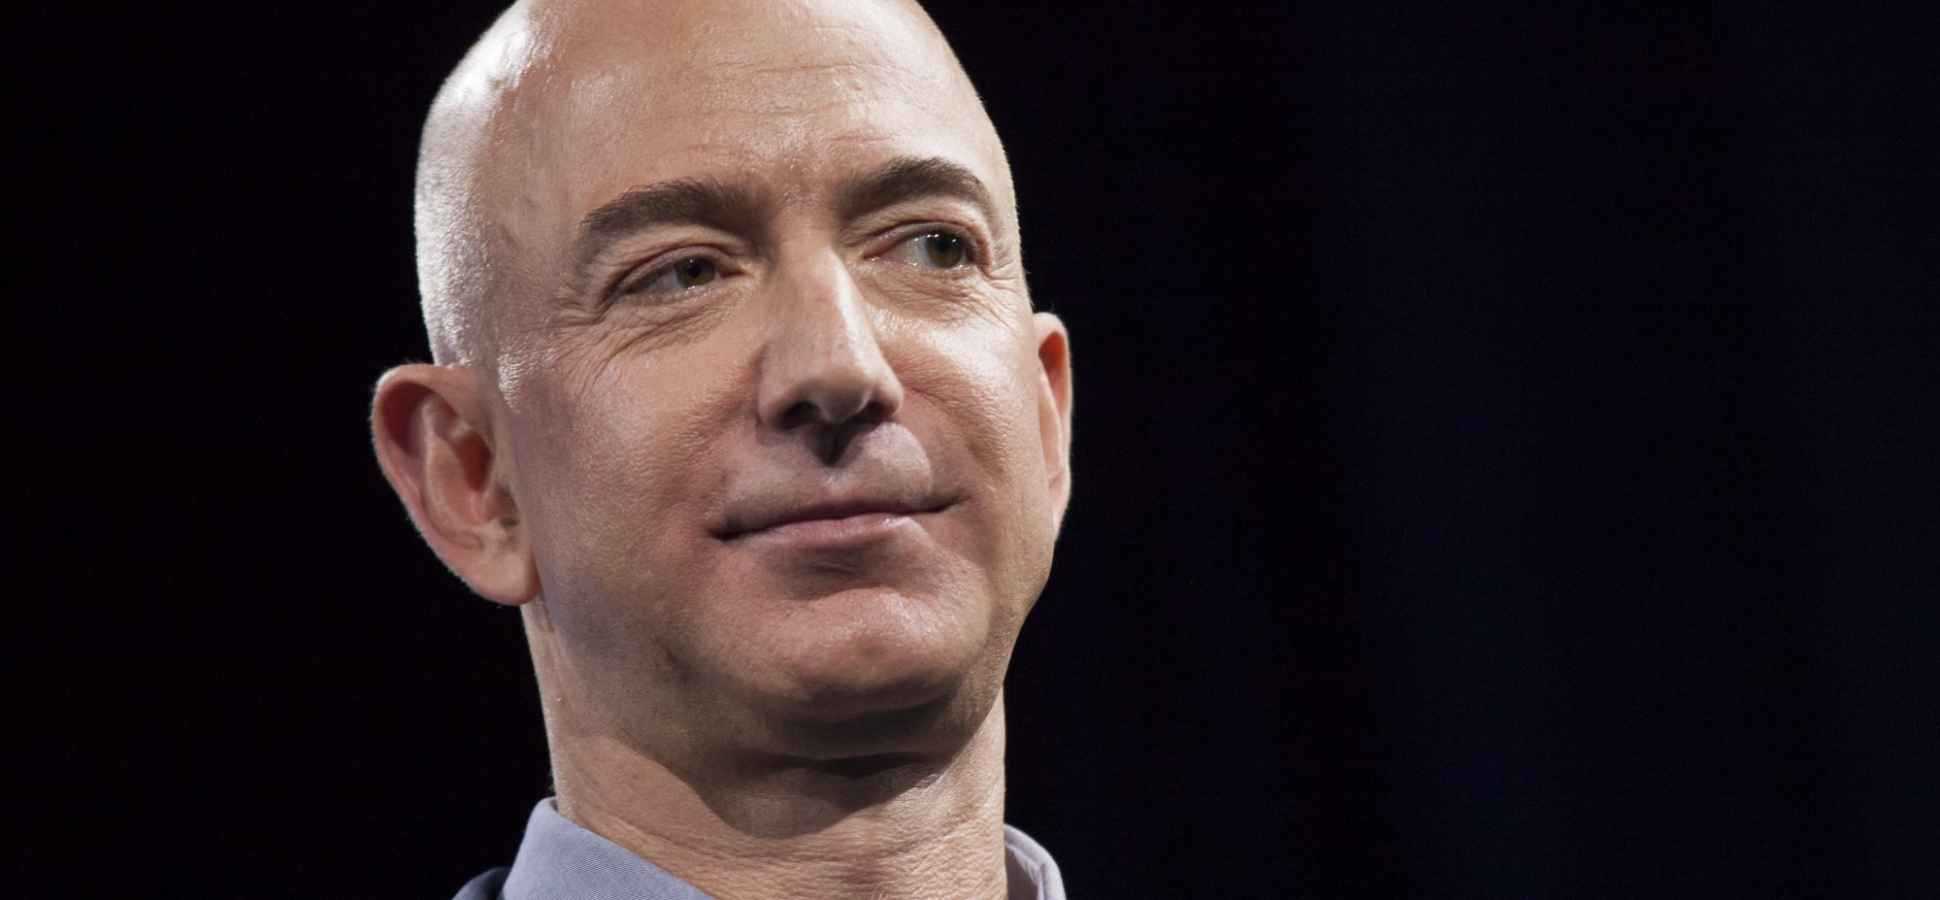 5 Reasons Why Jeff Bezos and Elon Musk Outperform Everyone Else